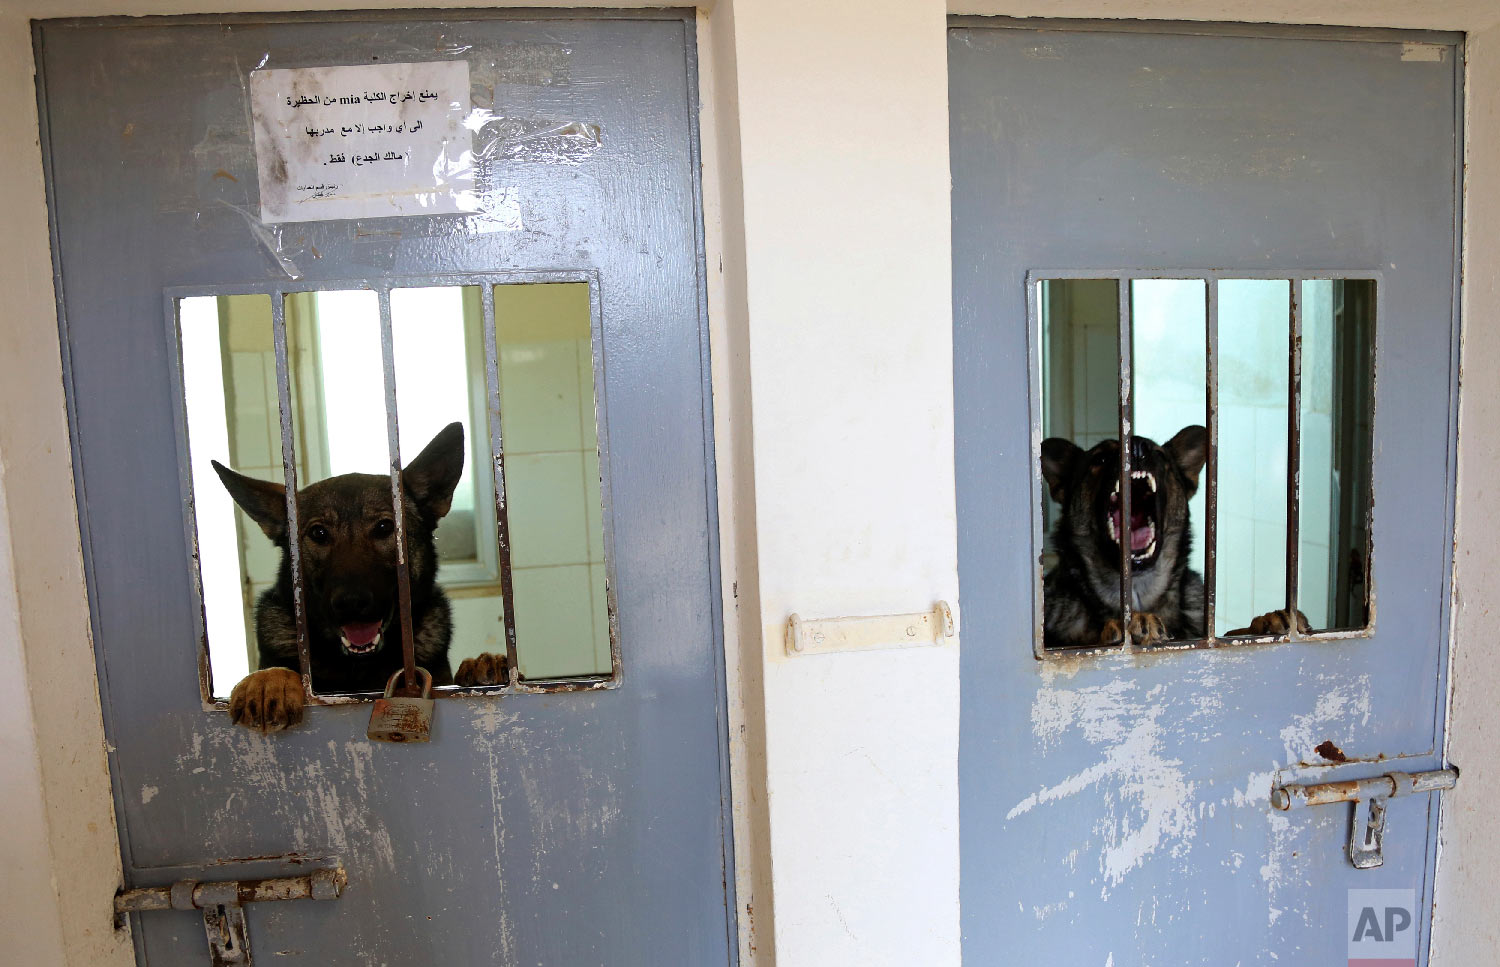 In this Monday, March 19, 2018 photo, two dogs from the K-9 unit of Jordan's police look through the bars of their kennels. The State Department's Anti-Terrorism Assistance program has trained 39 dog-handler teams and embedded two mentors with the program in Jordan, as part of efforts to upgrade Jordan's law enforcement efforts. (AP Photo/Raad Adayleh)